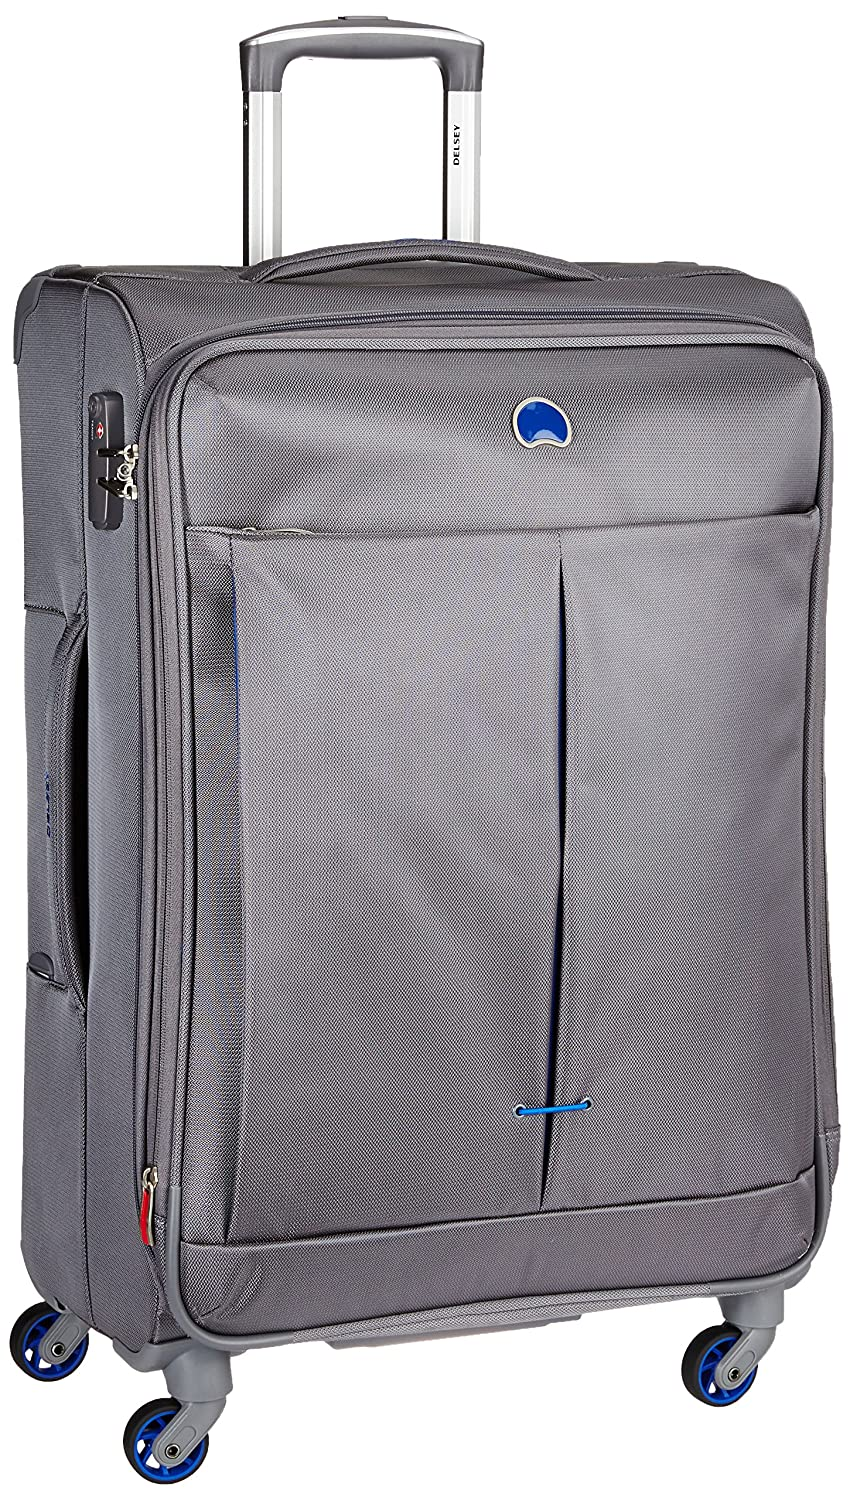 Delsey Polyester 82.5 cms Grey Soft Sided Suitcase (Air